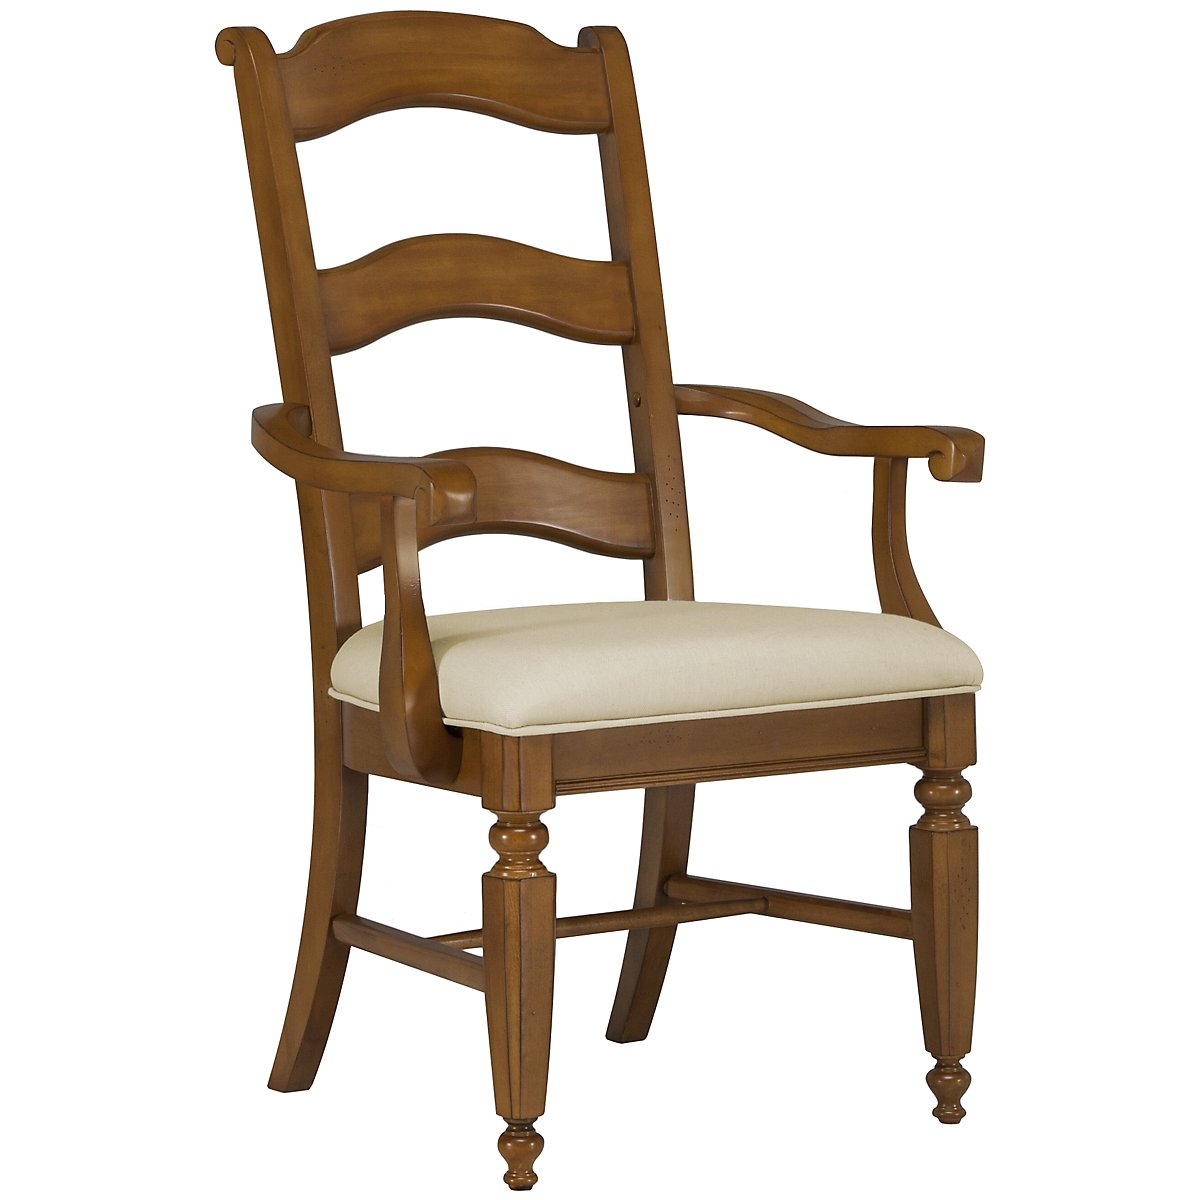 Claire Mid Tone Wood Arm Chair